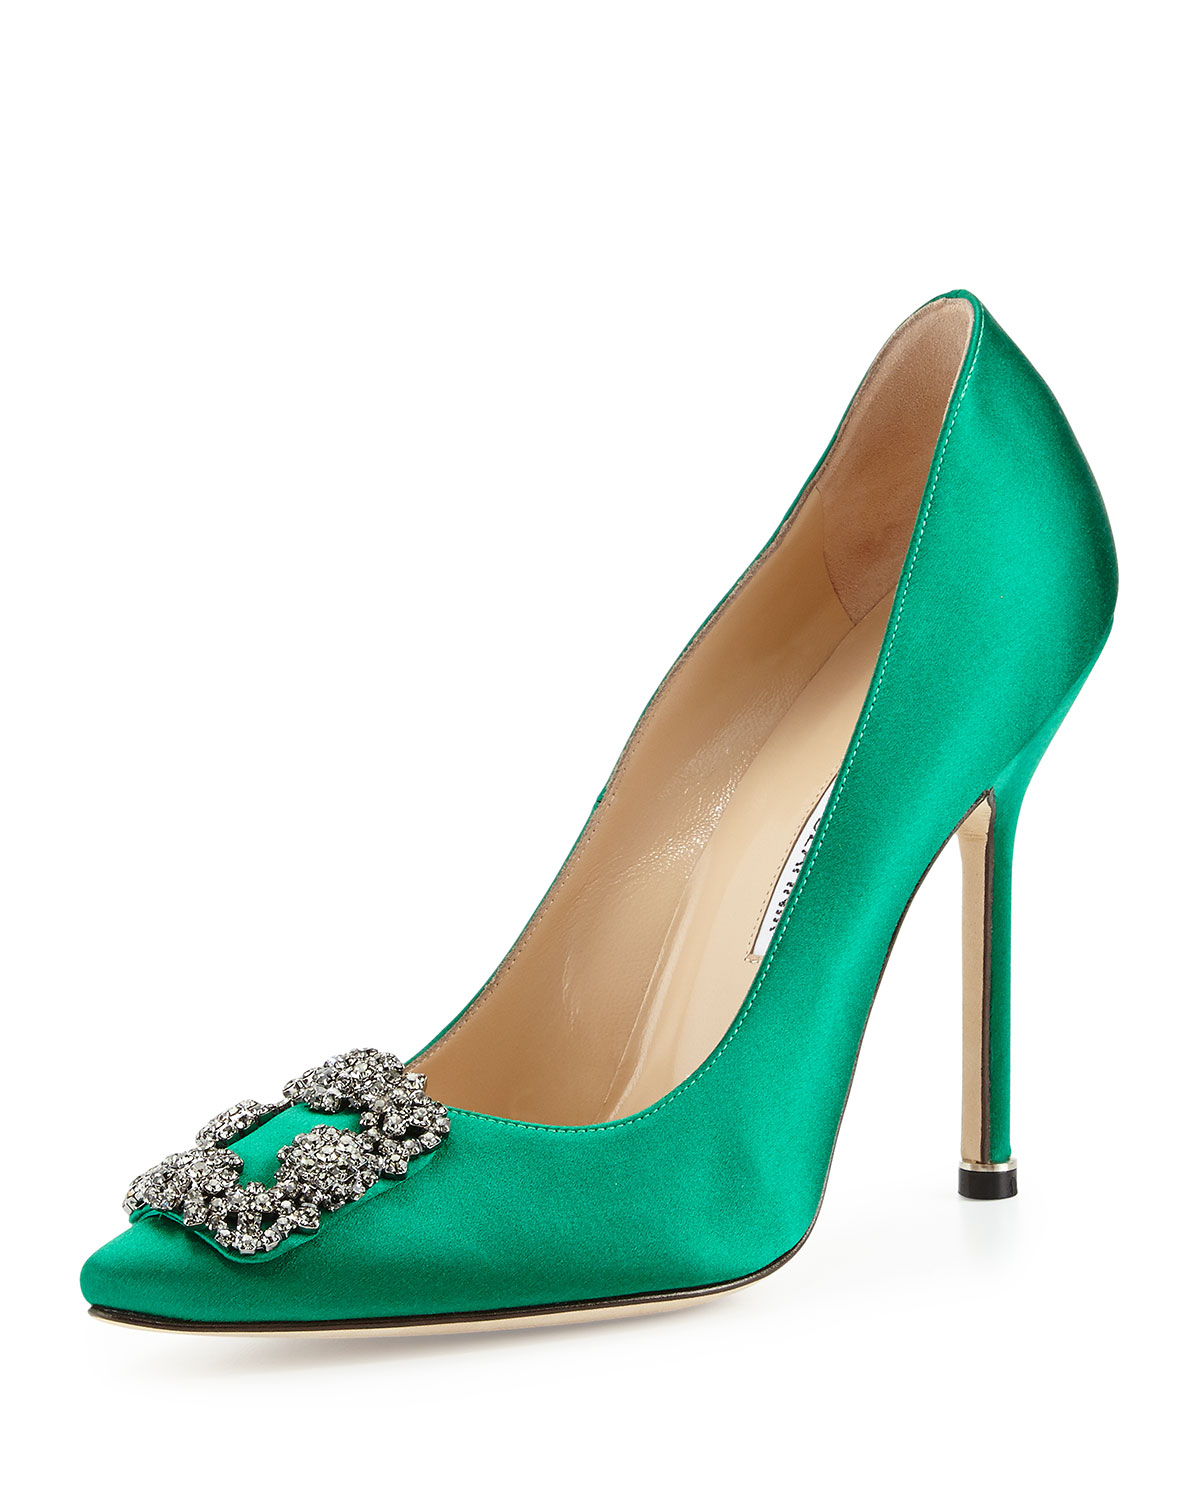 Lyst manolo blahnik hangisi crystal buckle satin pump in for Who is manolo blahnik